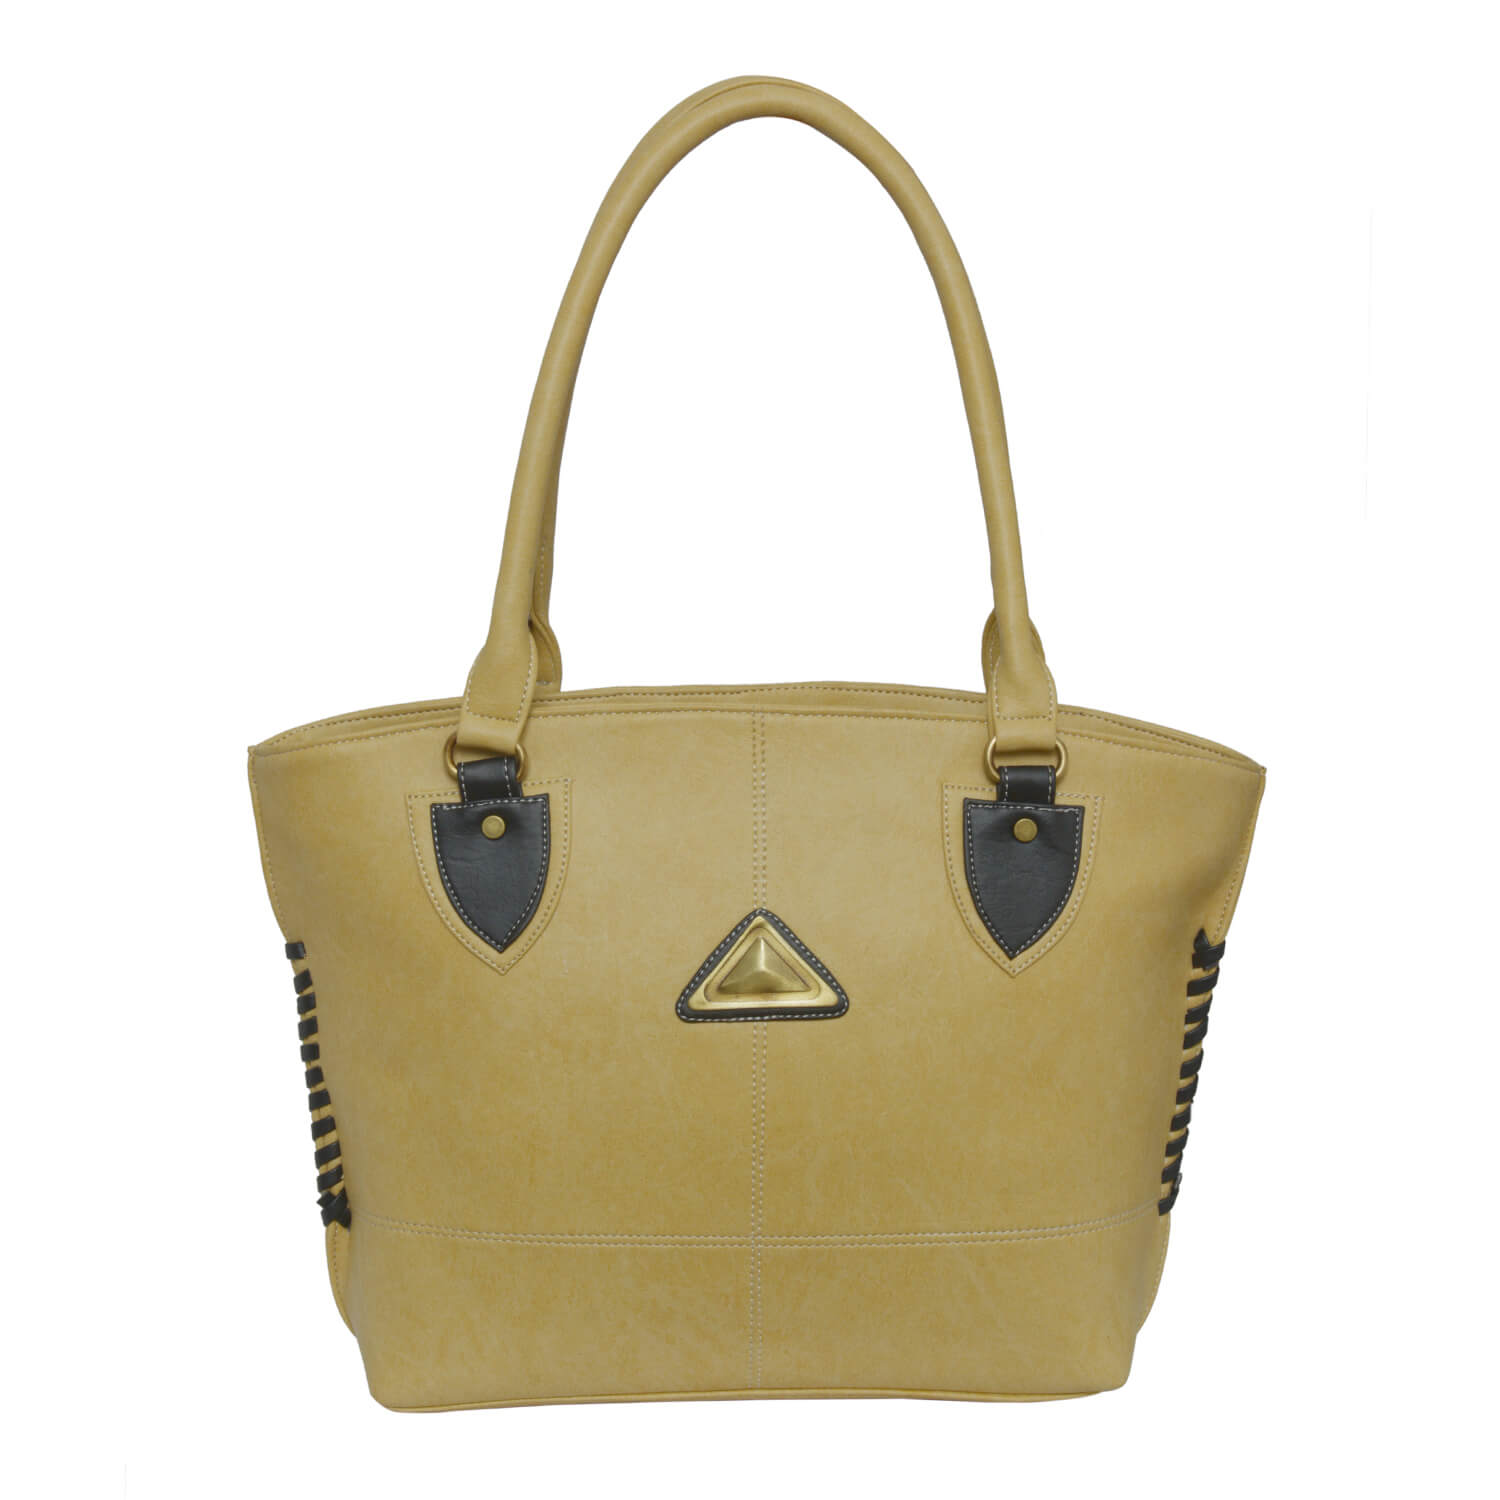 Right Choice RCH317 women's handbags in a modern type